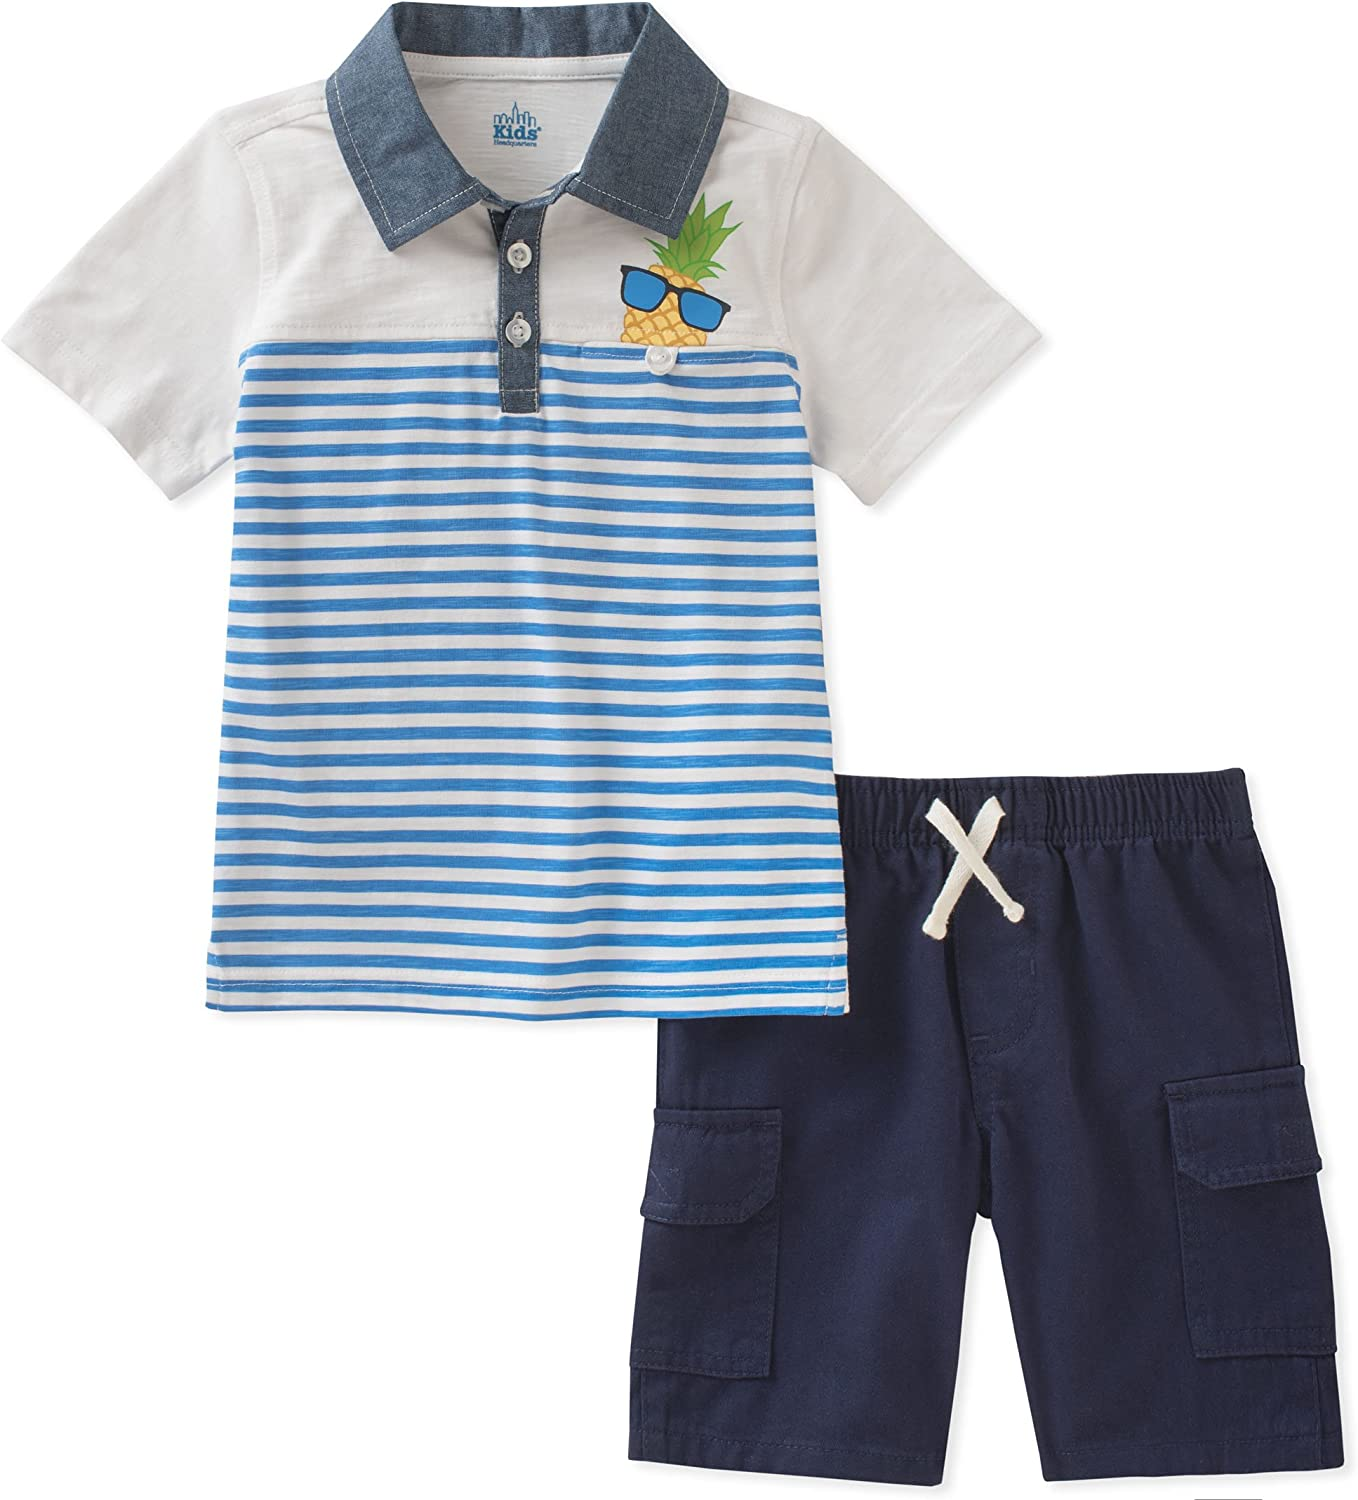 Kids Headquarters Baby Boys 2 Pieces Polo Short Set